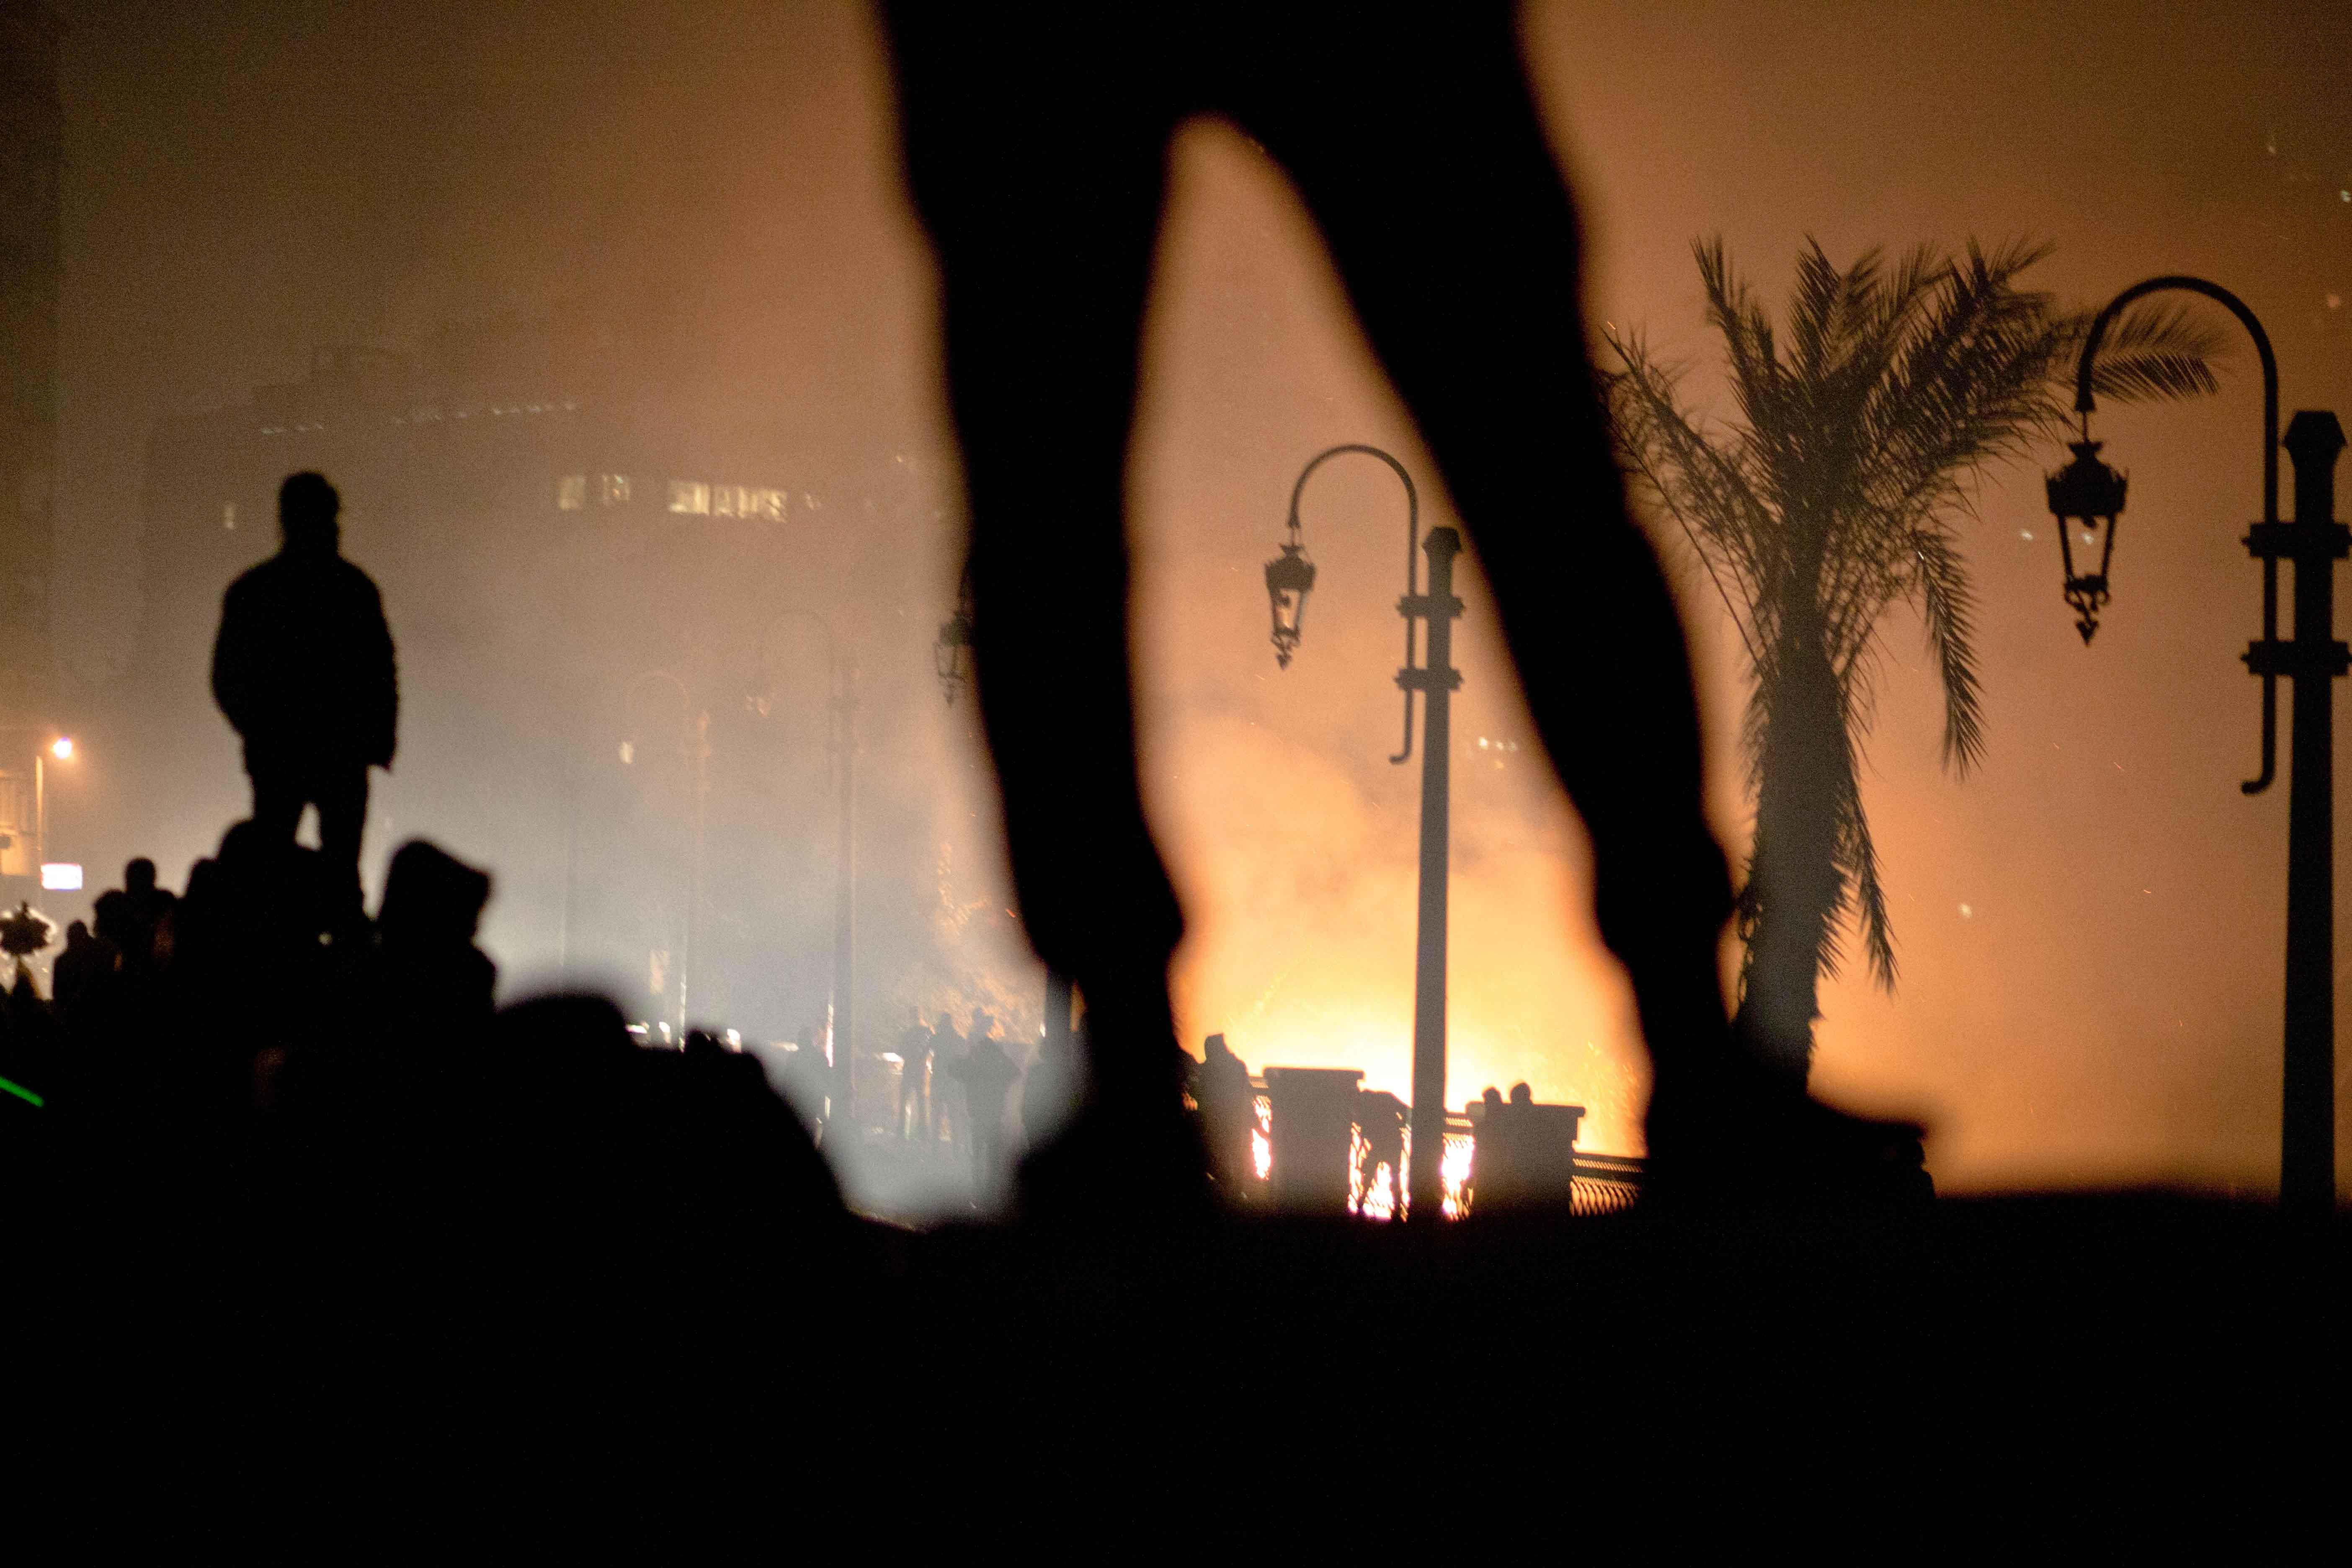 Clashes between protesters and police in Cairo on January 29, 2013, on the second anniversary of the Egyptian revolution. (Mahmoud Abu Zeid, known as Shawkan) Shawkan's work is on display at St. Ann's Warehouse in Brooklyn through October 6.